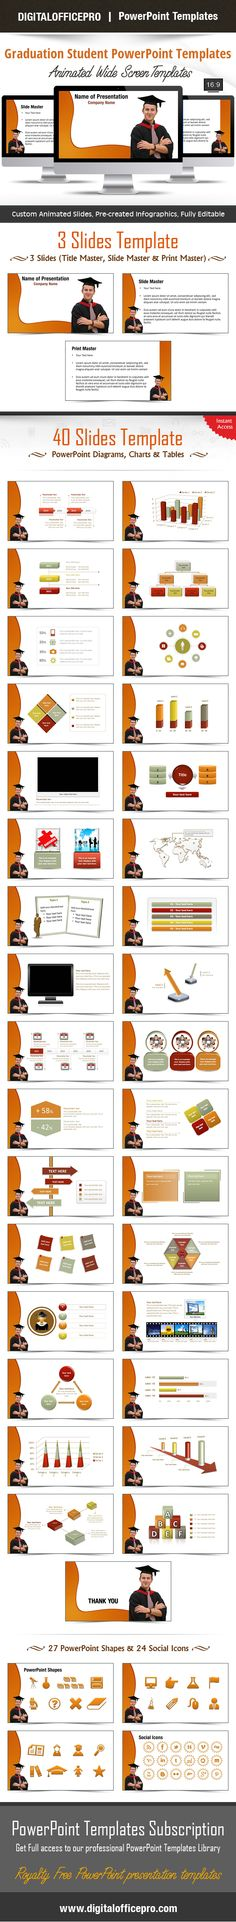 Divorce Decree PowerPoint Template Backgrounds - divorce decree template